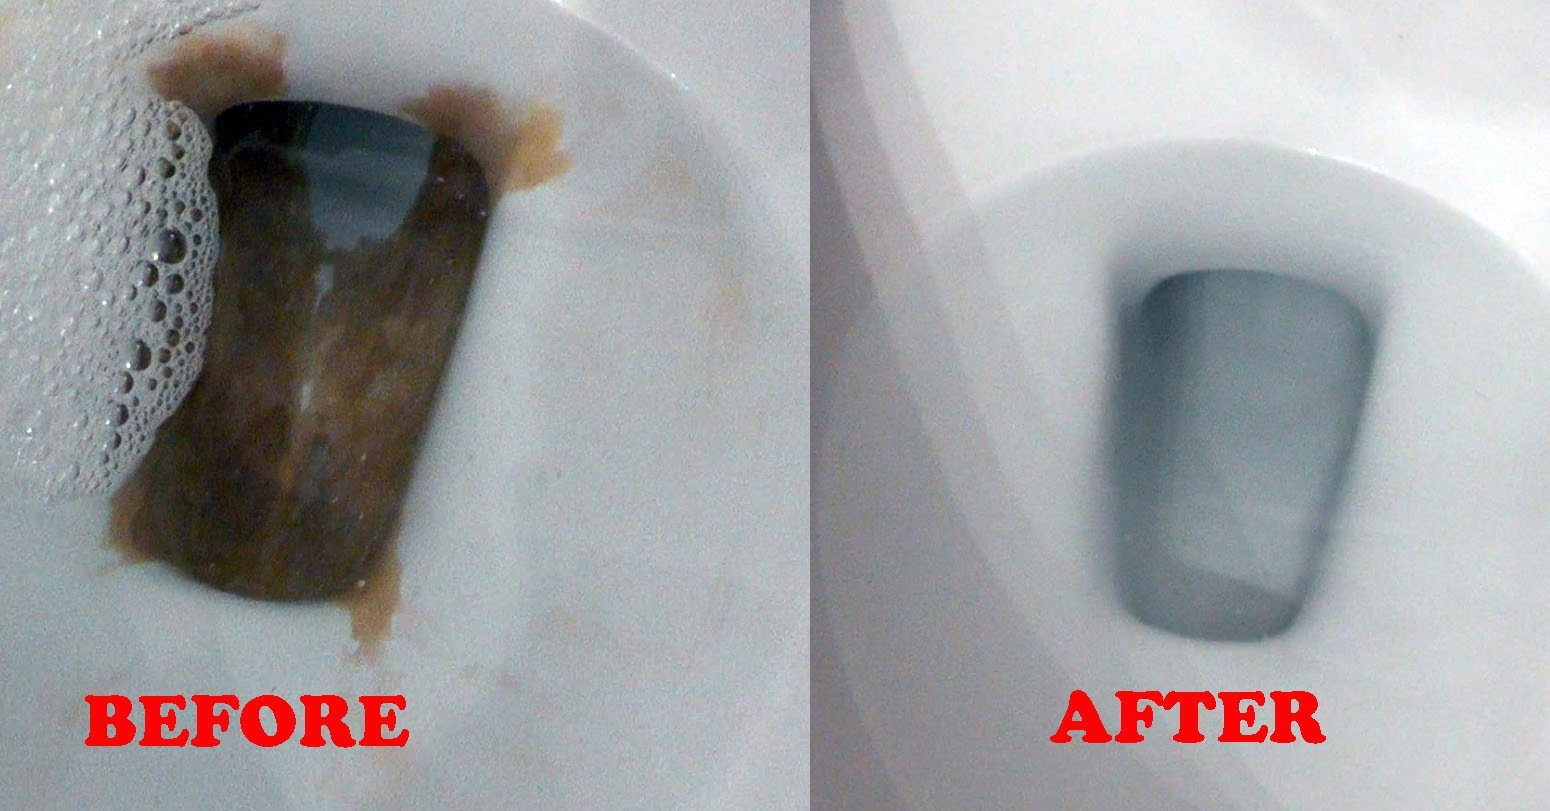 How To Remove Stubborn Hard Water Stains From Toilet